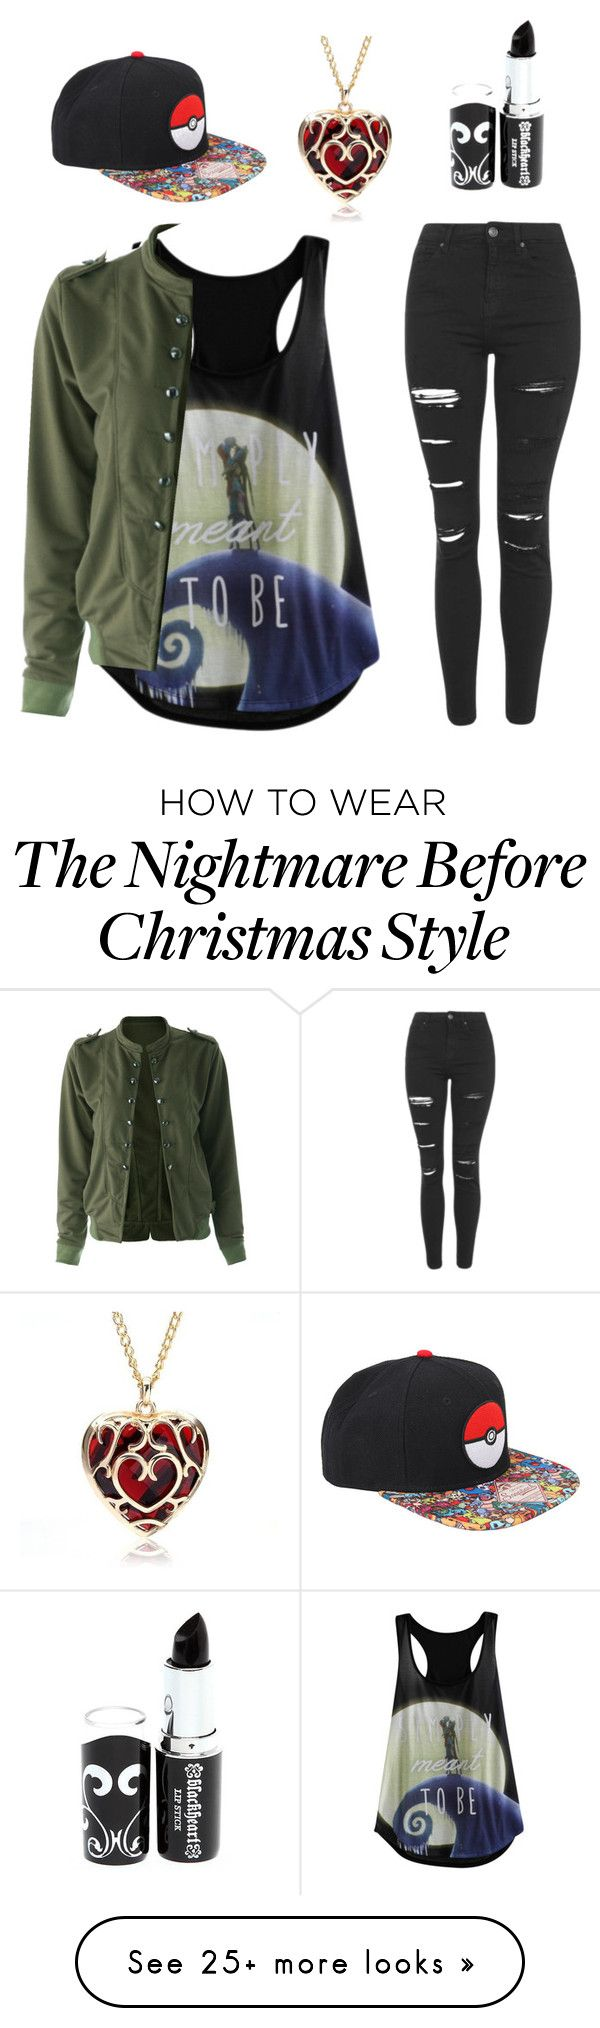 """""""Dream outfit"""" by alexandria2106 on Polyvore featuring Topshop, women's clothing, women's fashion, women, female, woman, misses and juniors"""